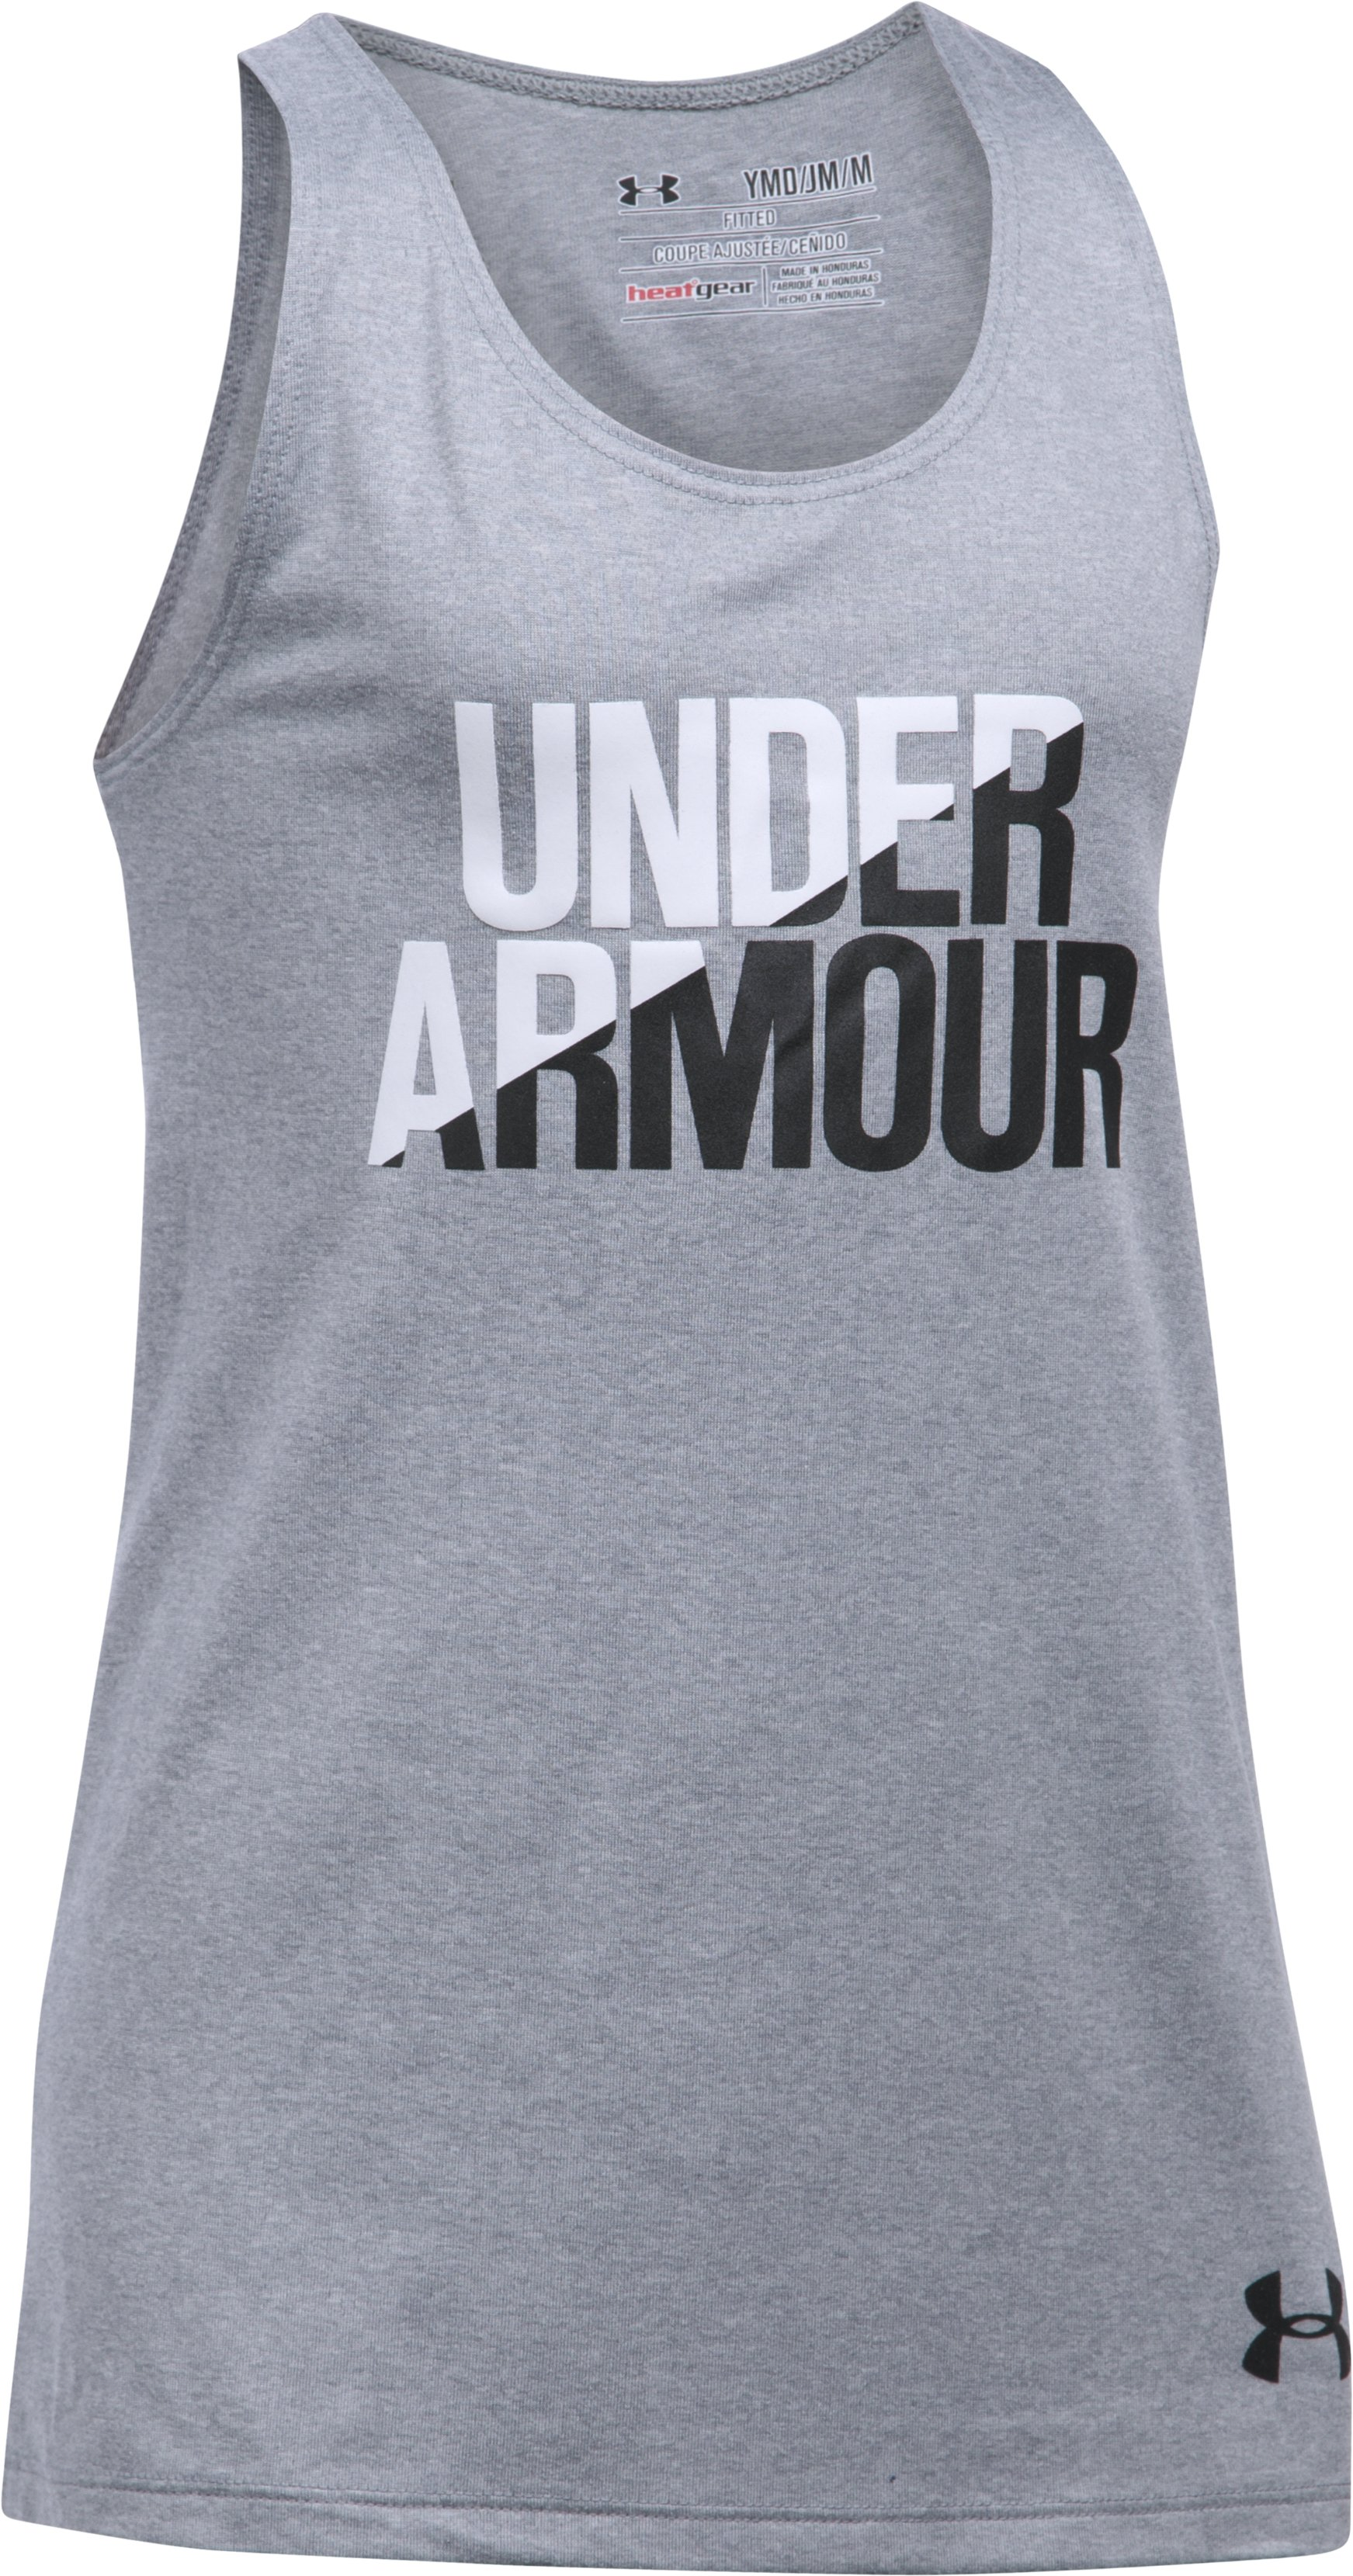 Girls' UA Under Armour Tank, True Gray Heather, zoomed image